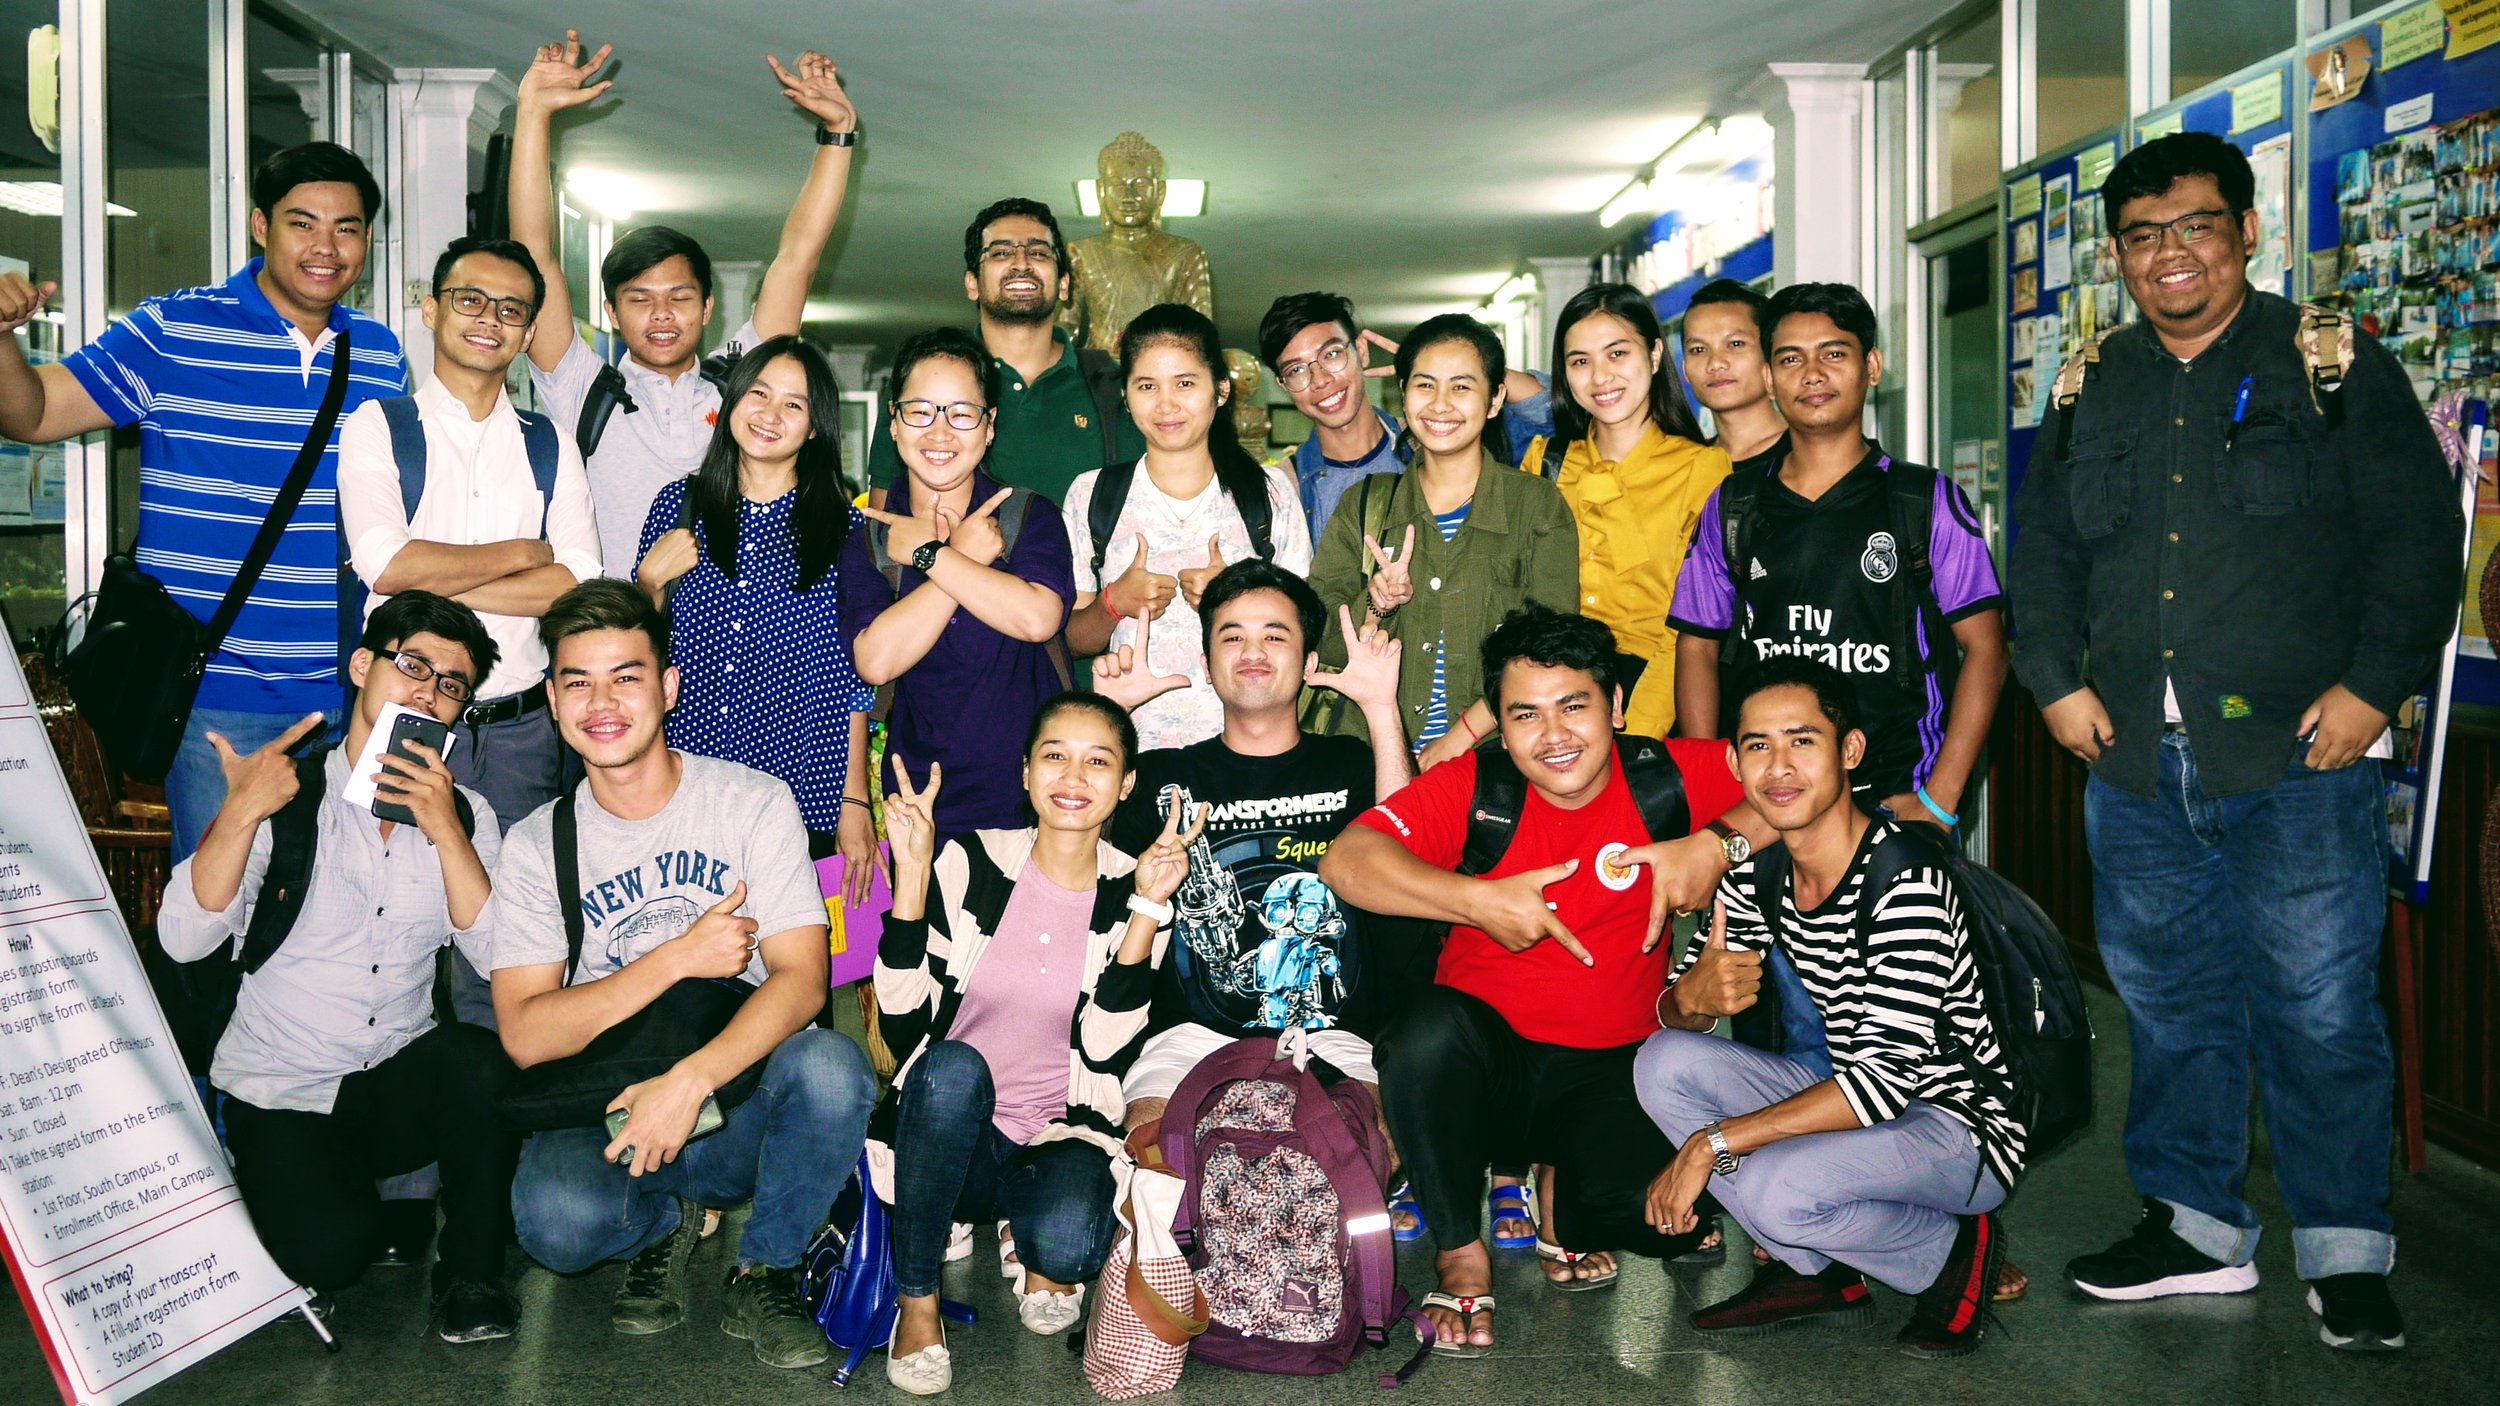 """The lecture on the """"legal aspects of blogging and citizen journalism"""" was attended by 30 students from Pannasastra's Media and Ethics course."""